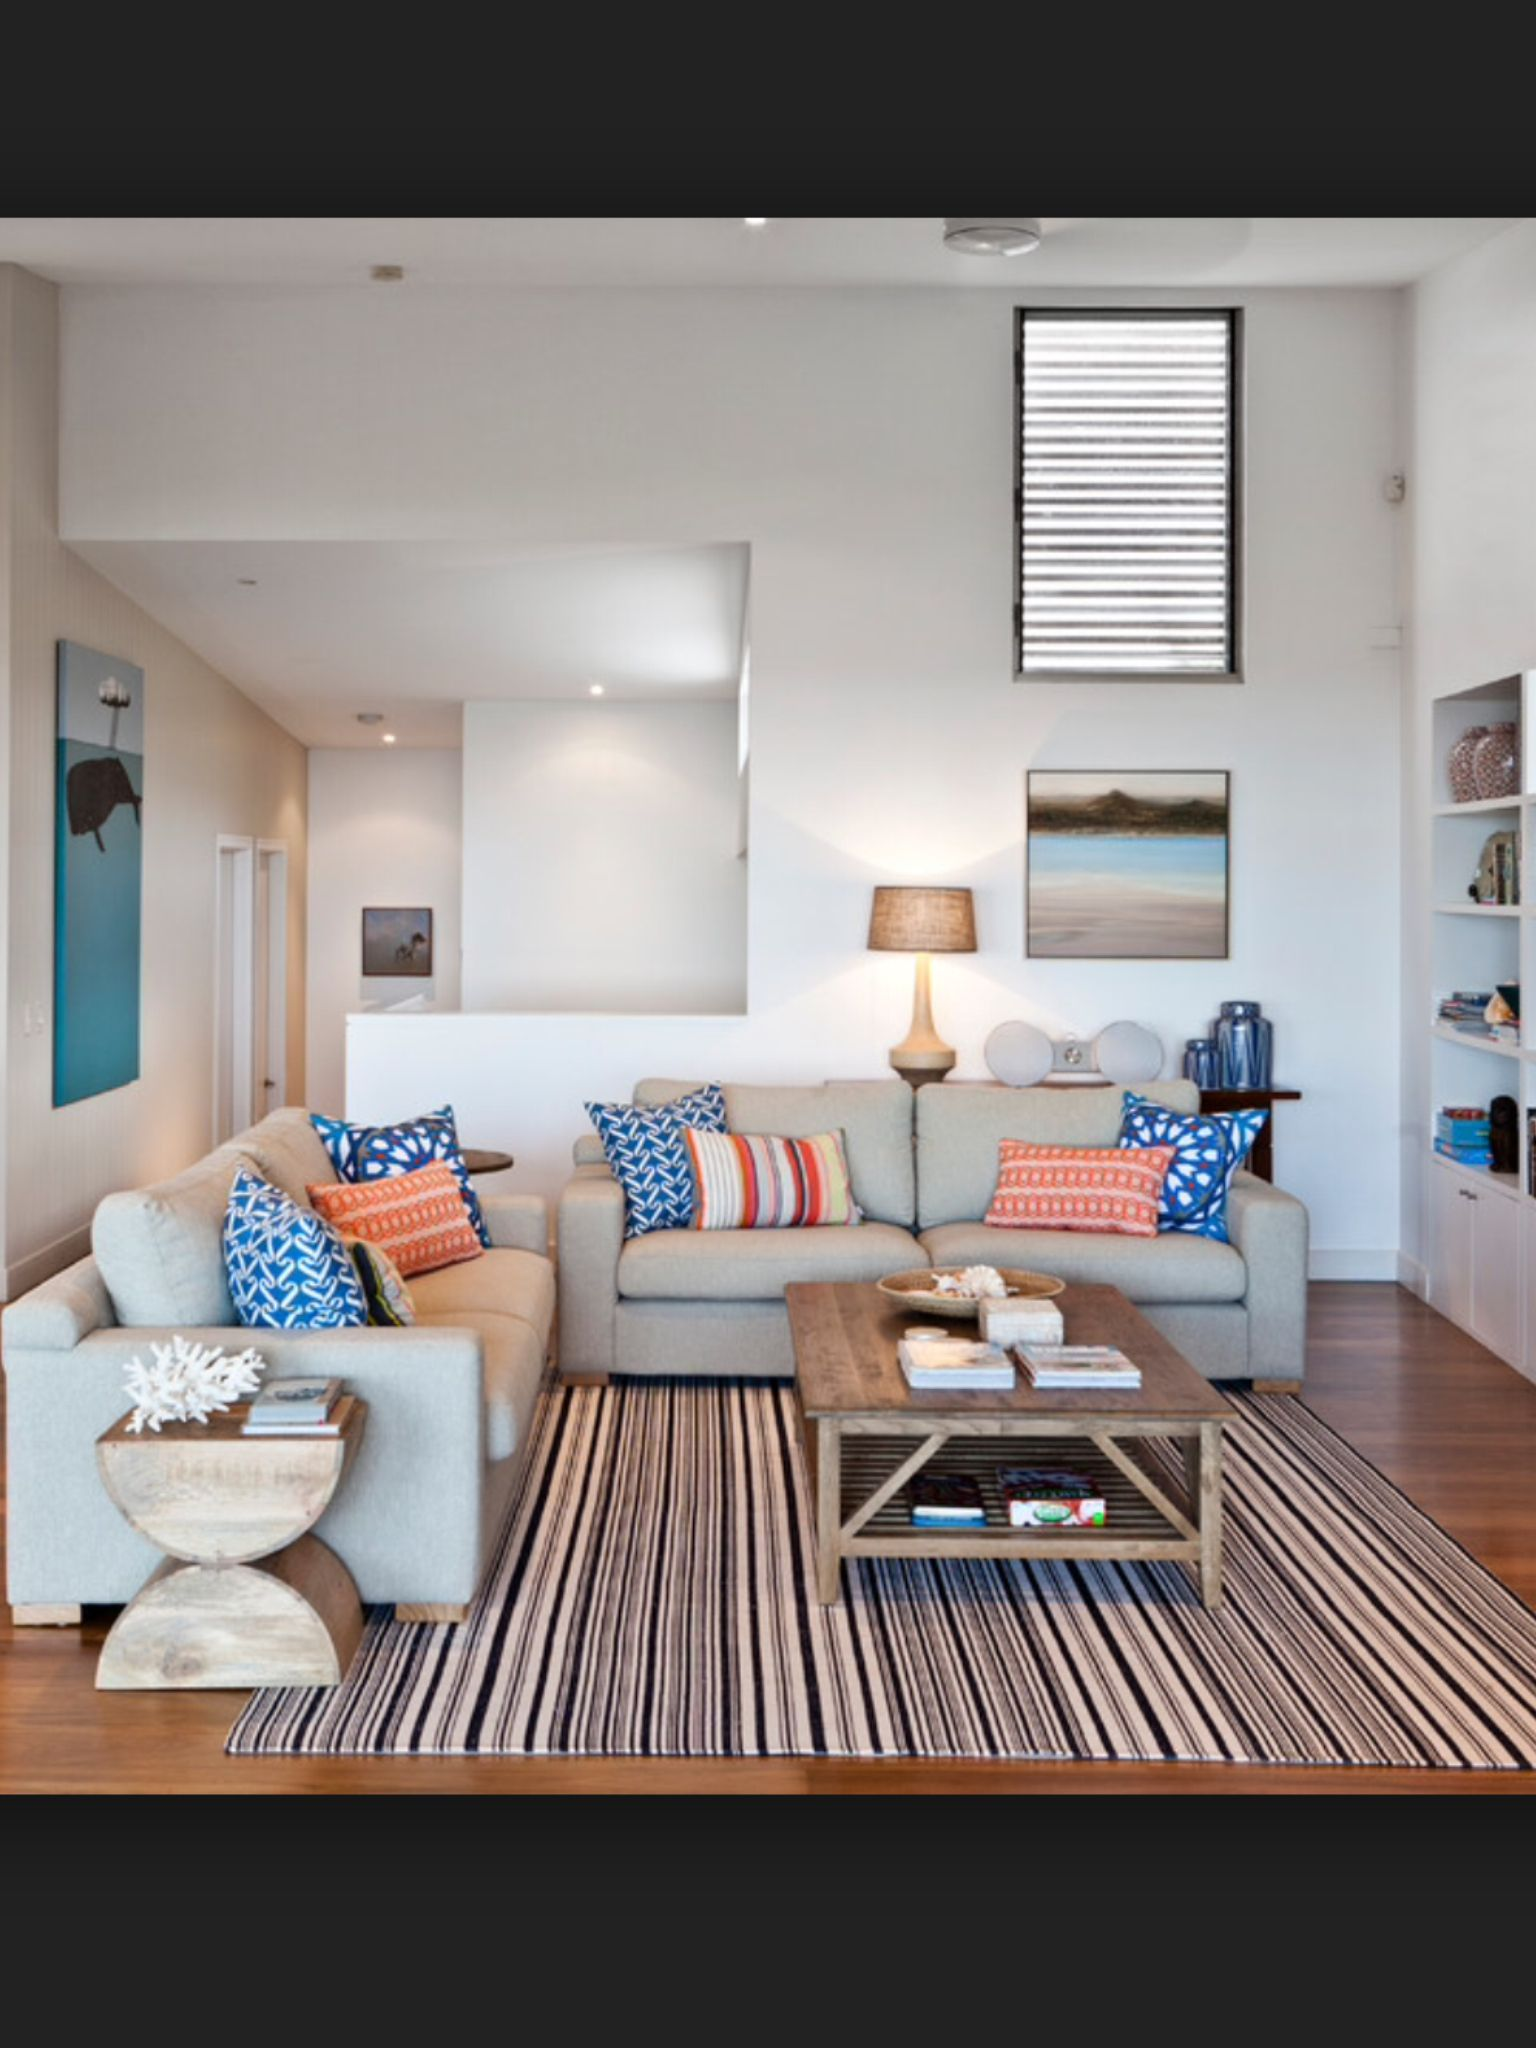 Contemporary Coastal Decor Neutrals And Timber With A Splash Of Colour